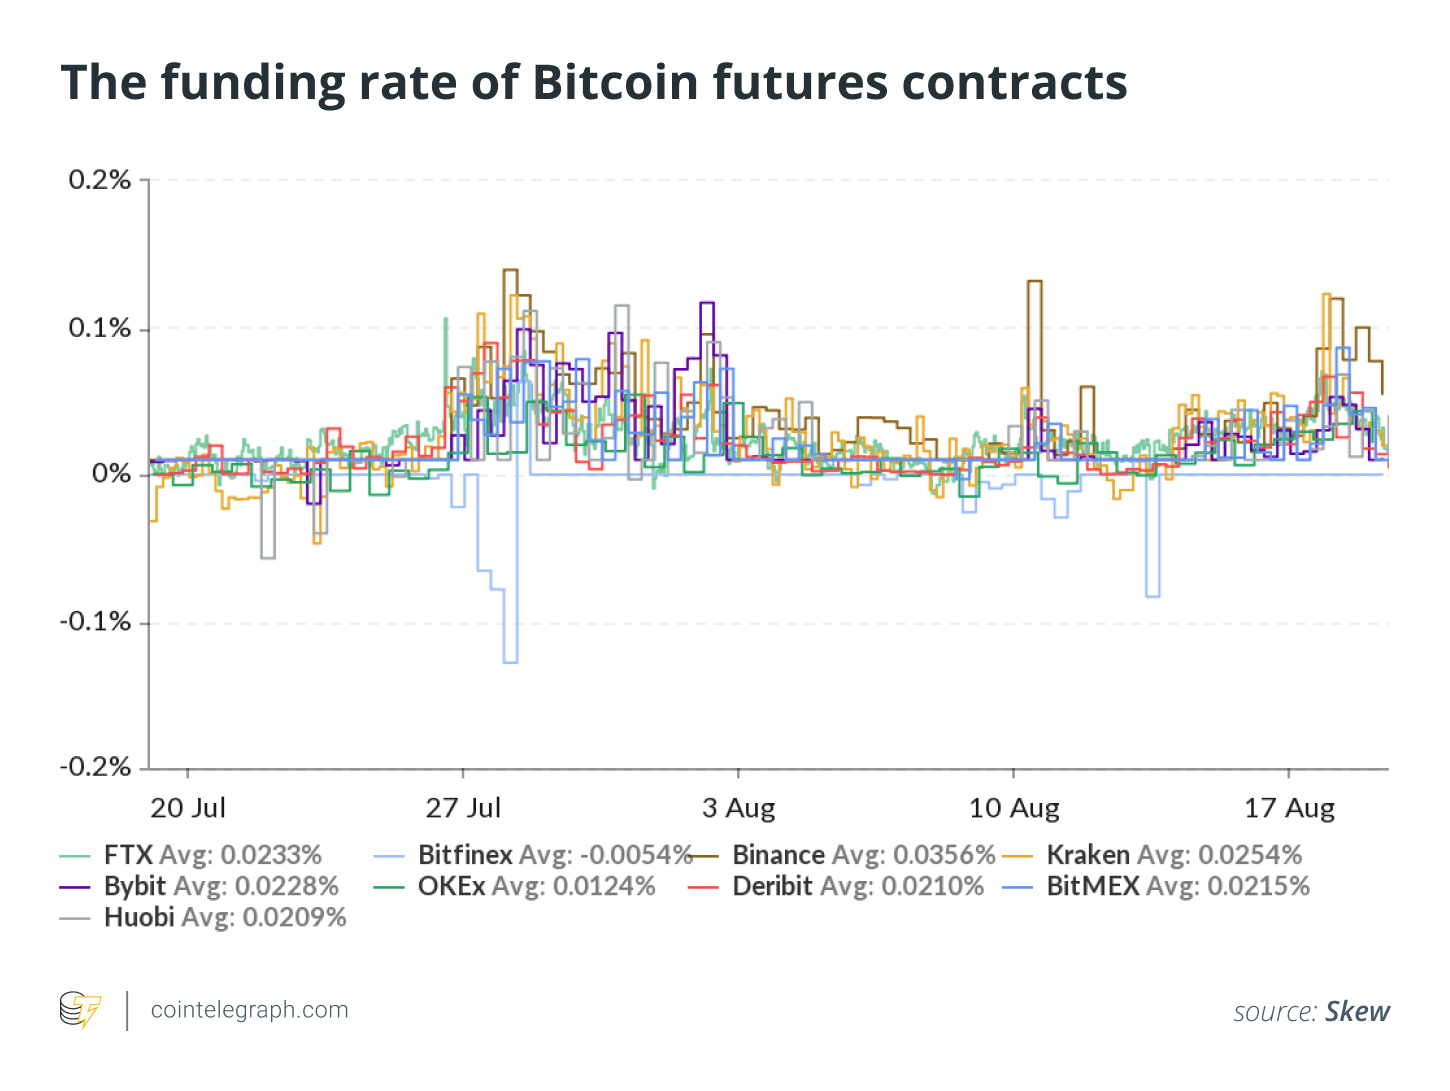 The funding rate of Bitcoin futures contracts